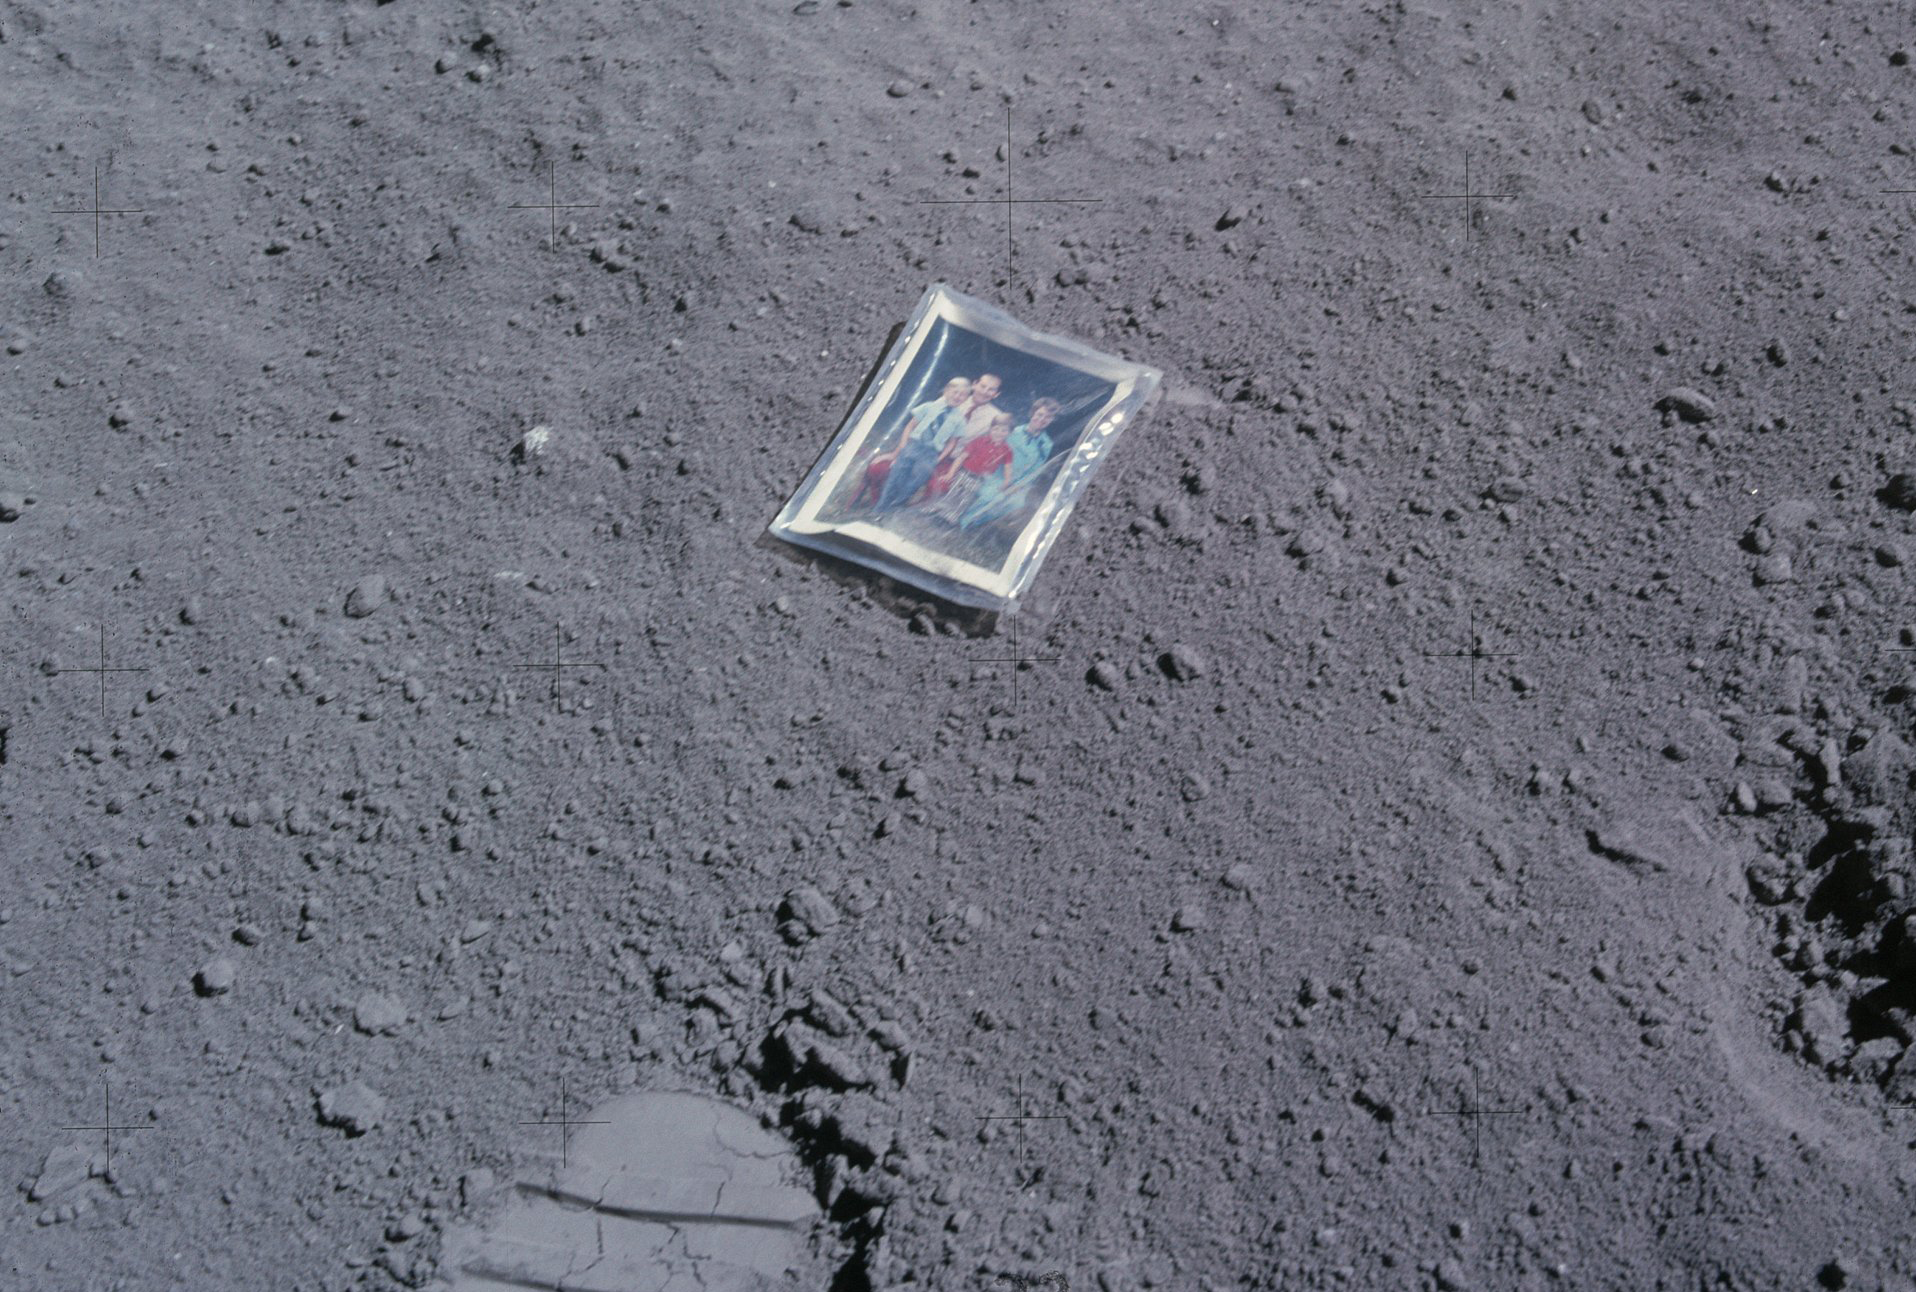 Image: Apollo 16